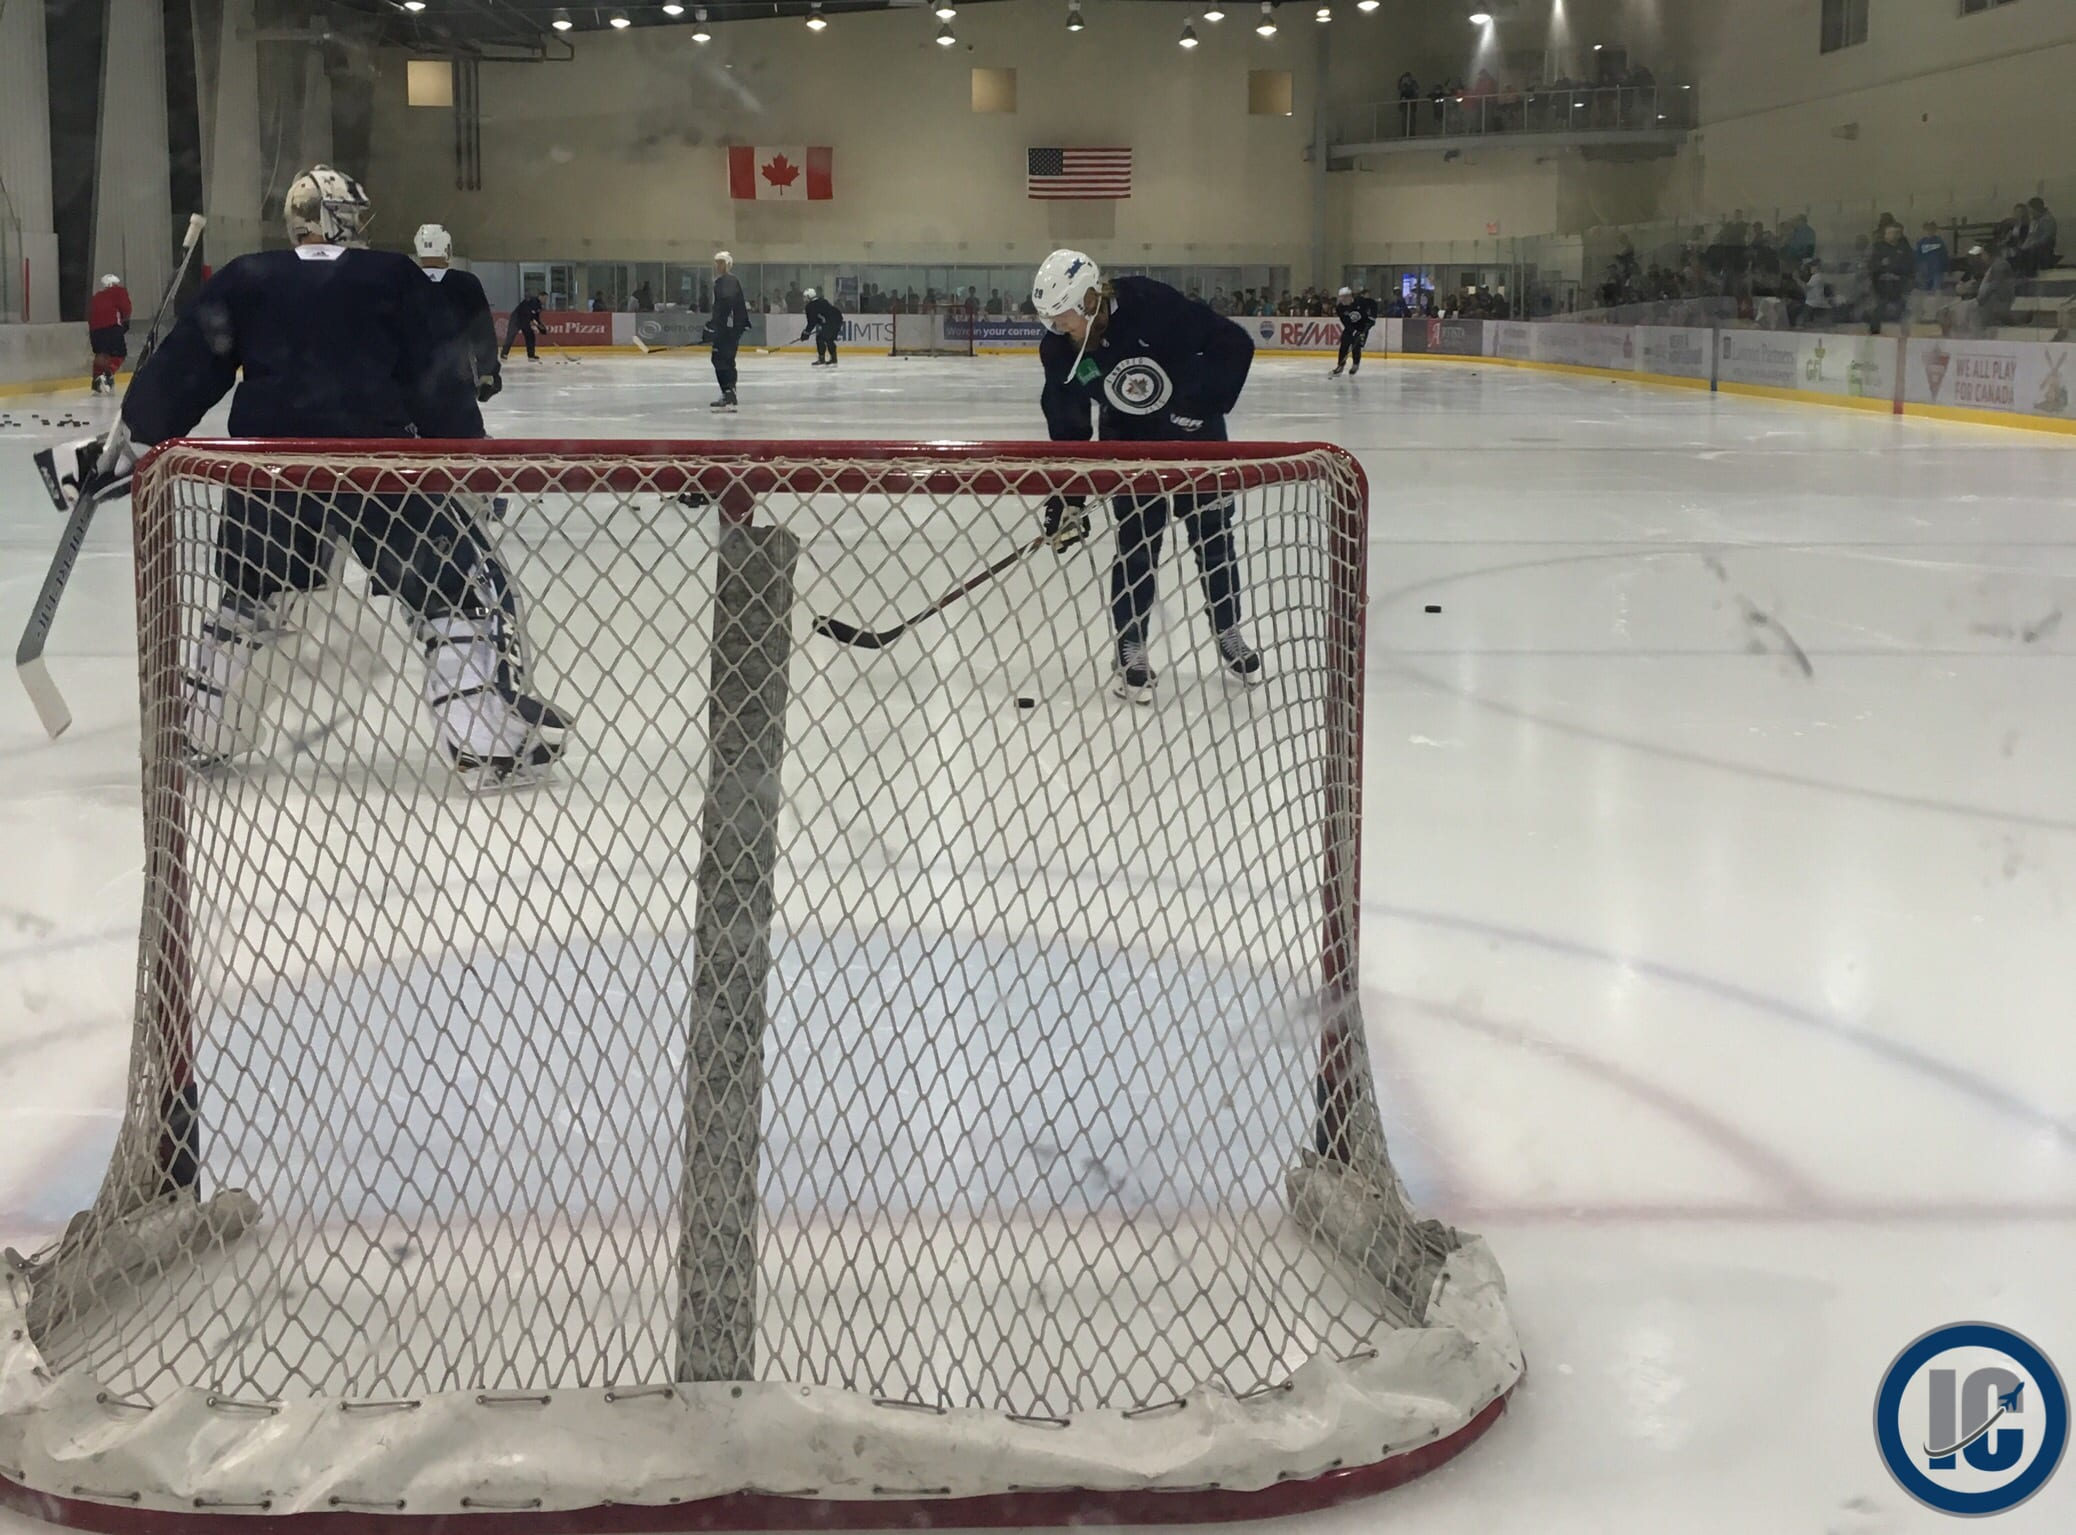 buy popular 1fc9a 2e52a Winnipeg Jets Playoff Practice Report – Illegal Curve Hockey